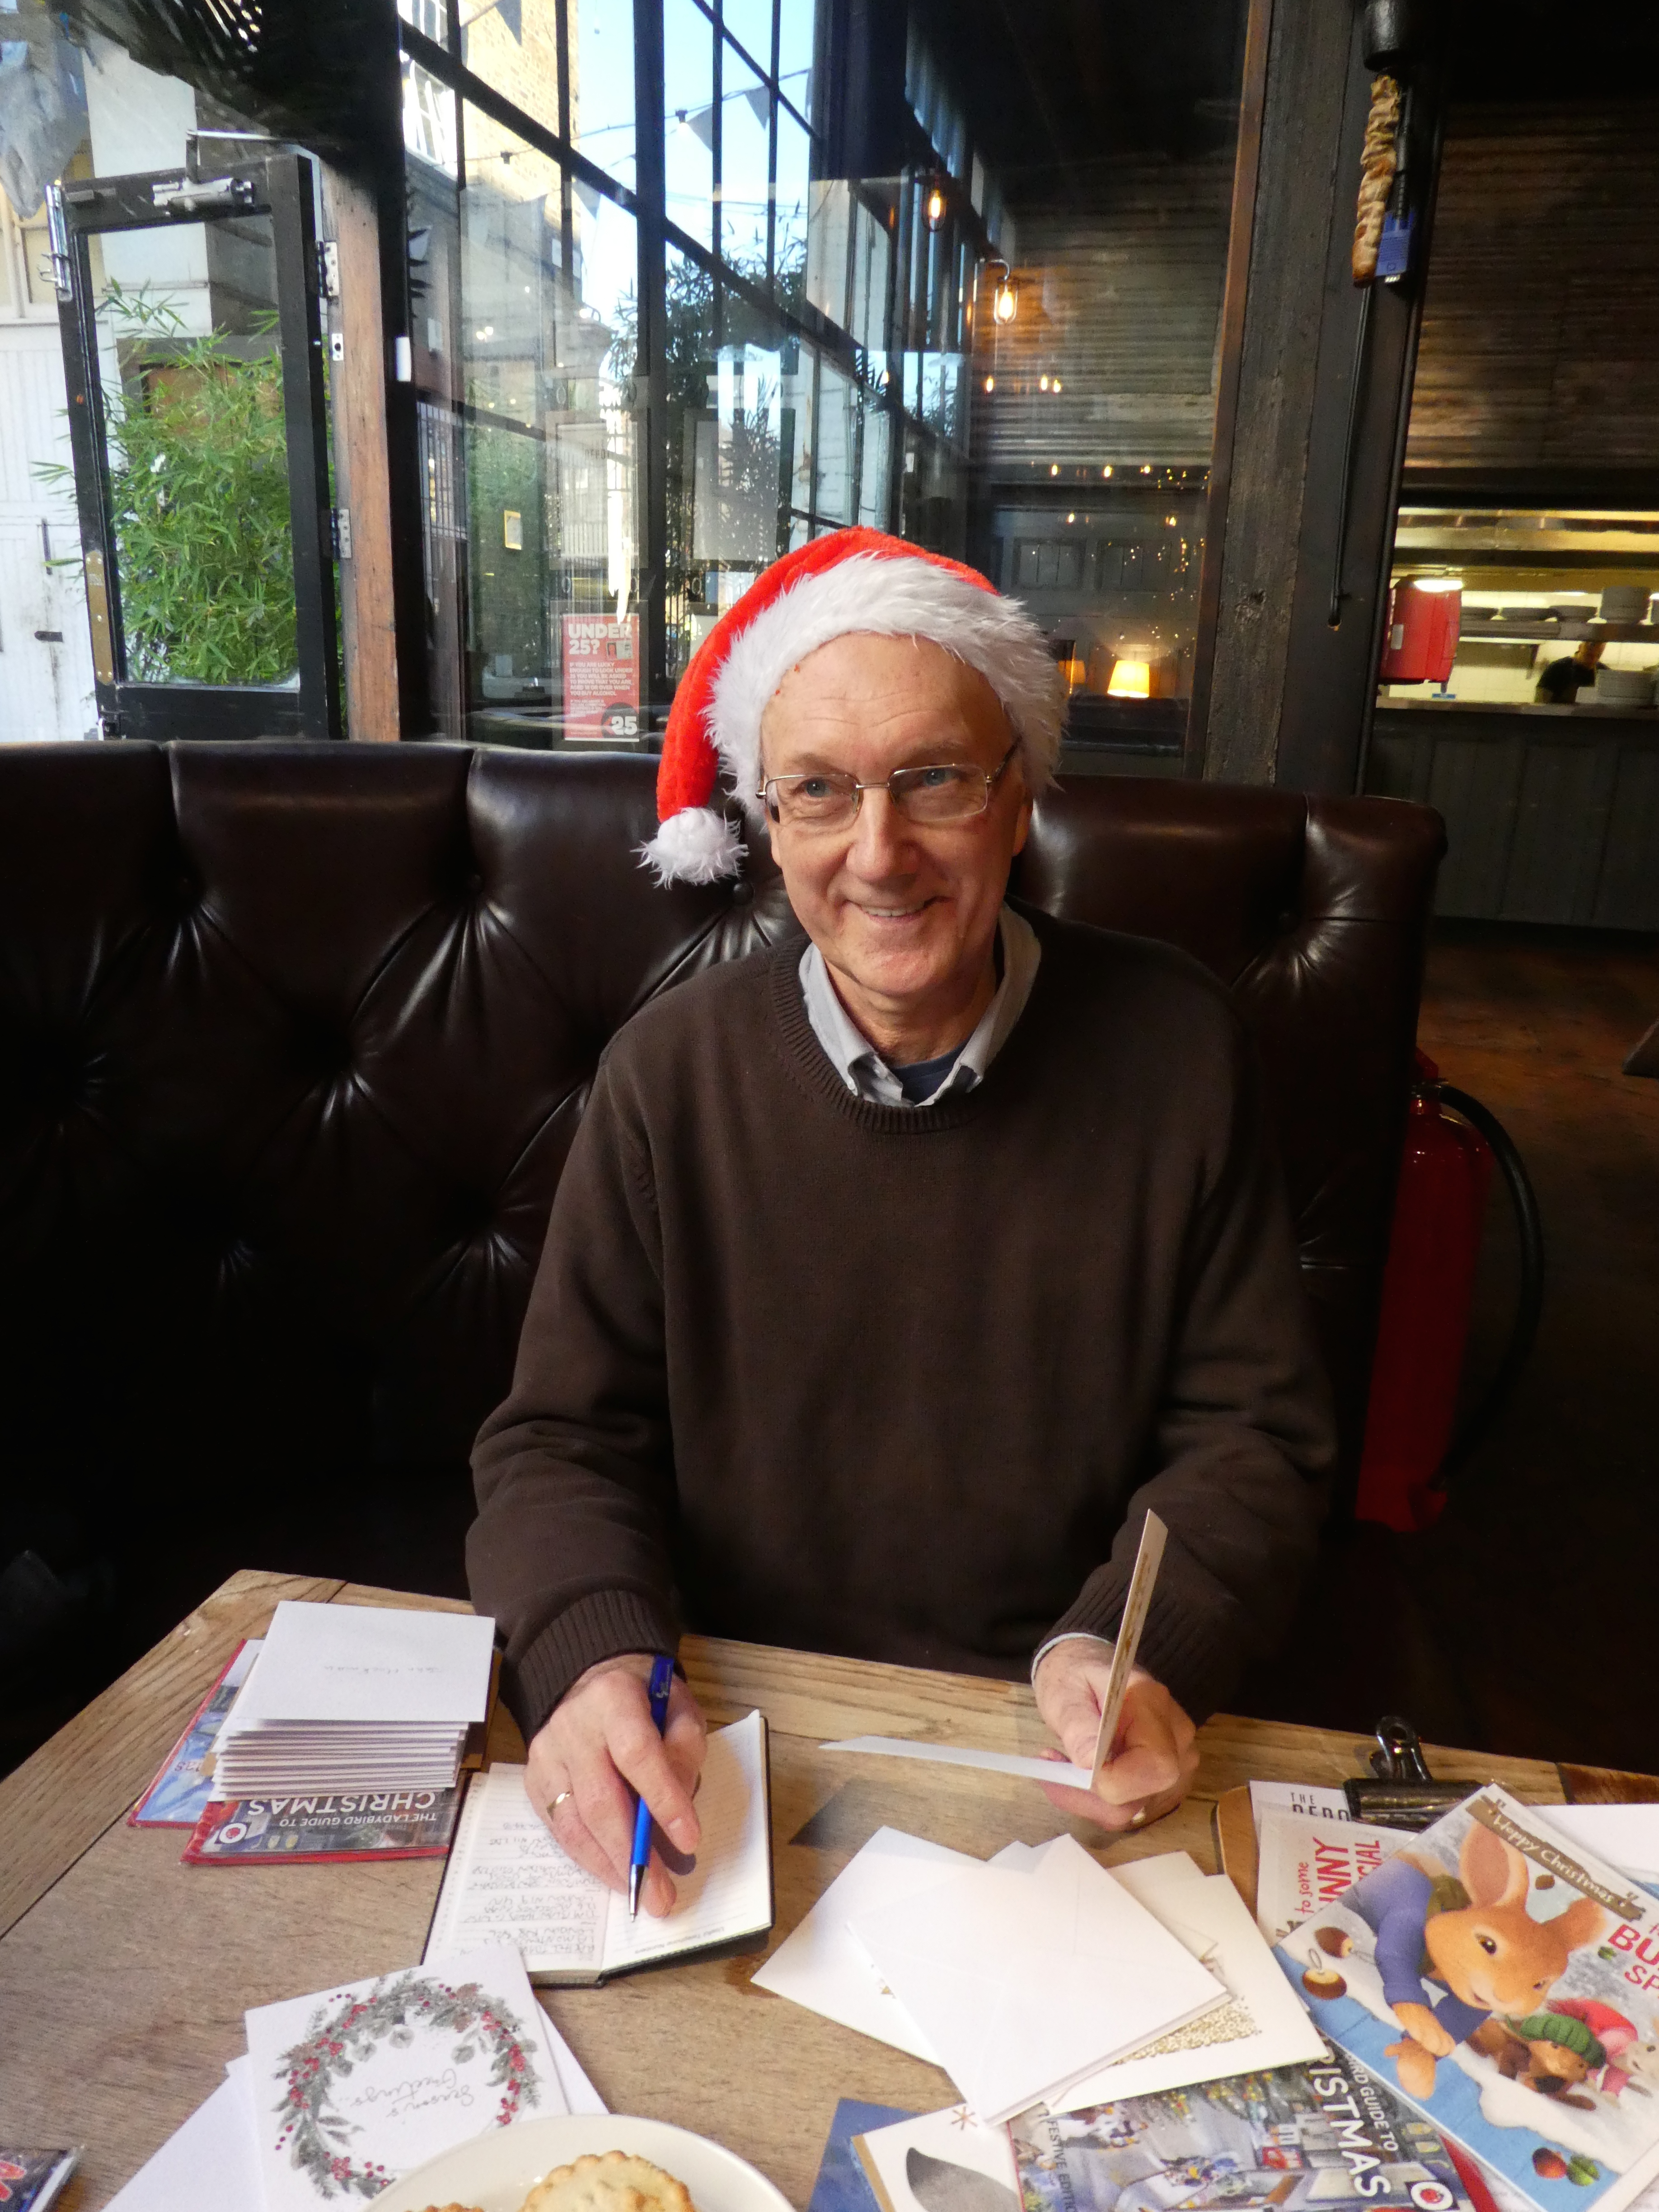 Above: Member of the public Nigel Scott was well up for Festive Friday, arriving with his address book with a mission to write and send all his Christmas cards at the GCA event.